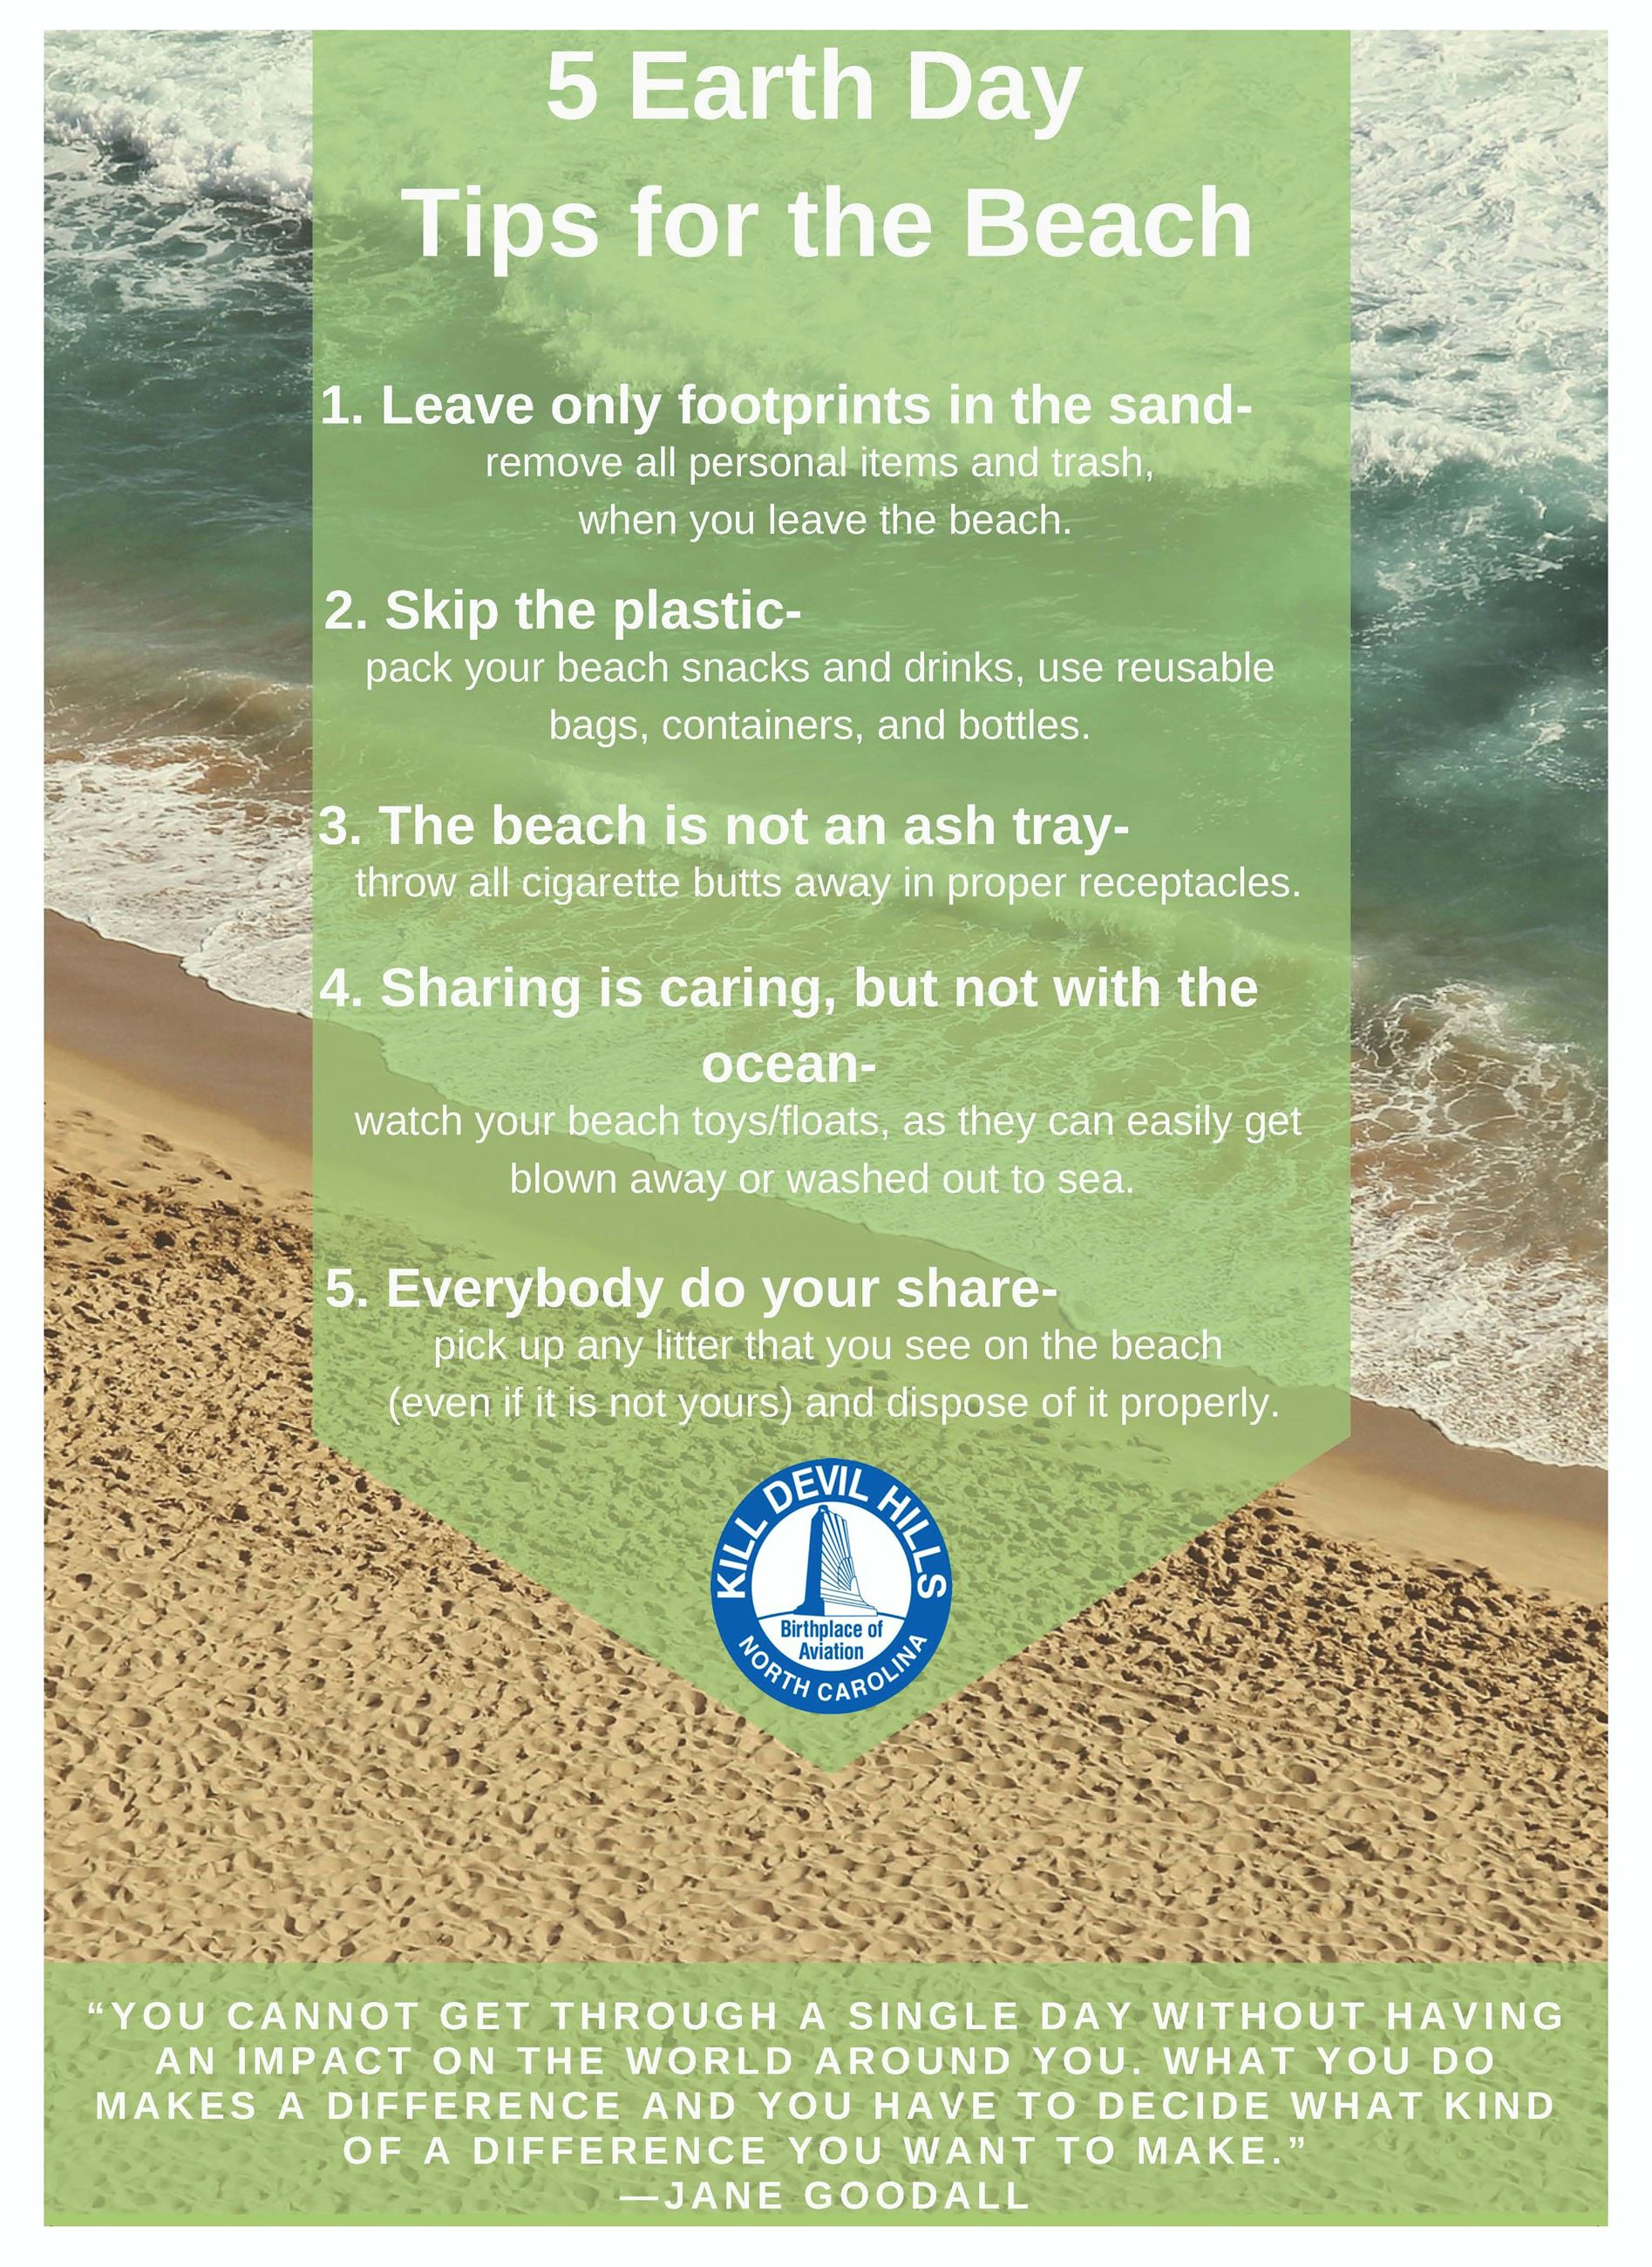 KDH Earth Day Tips for the Beach